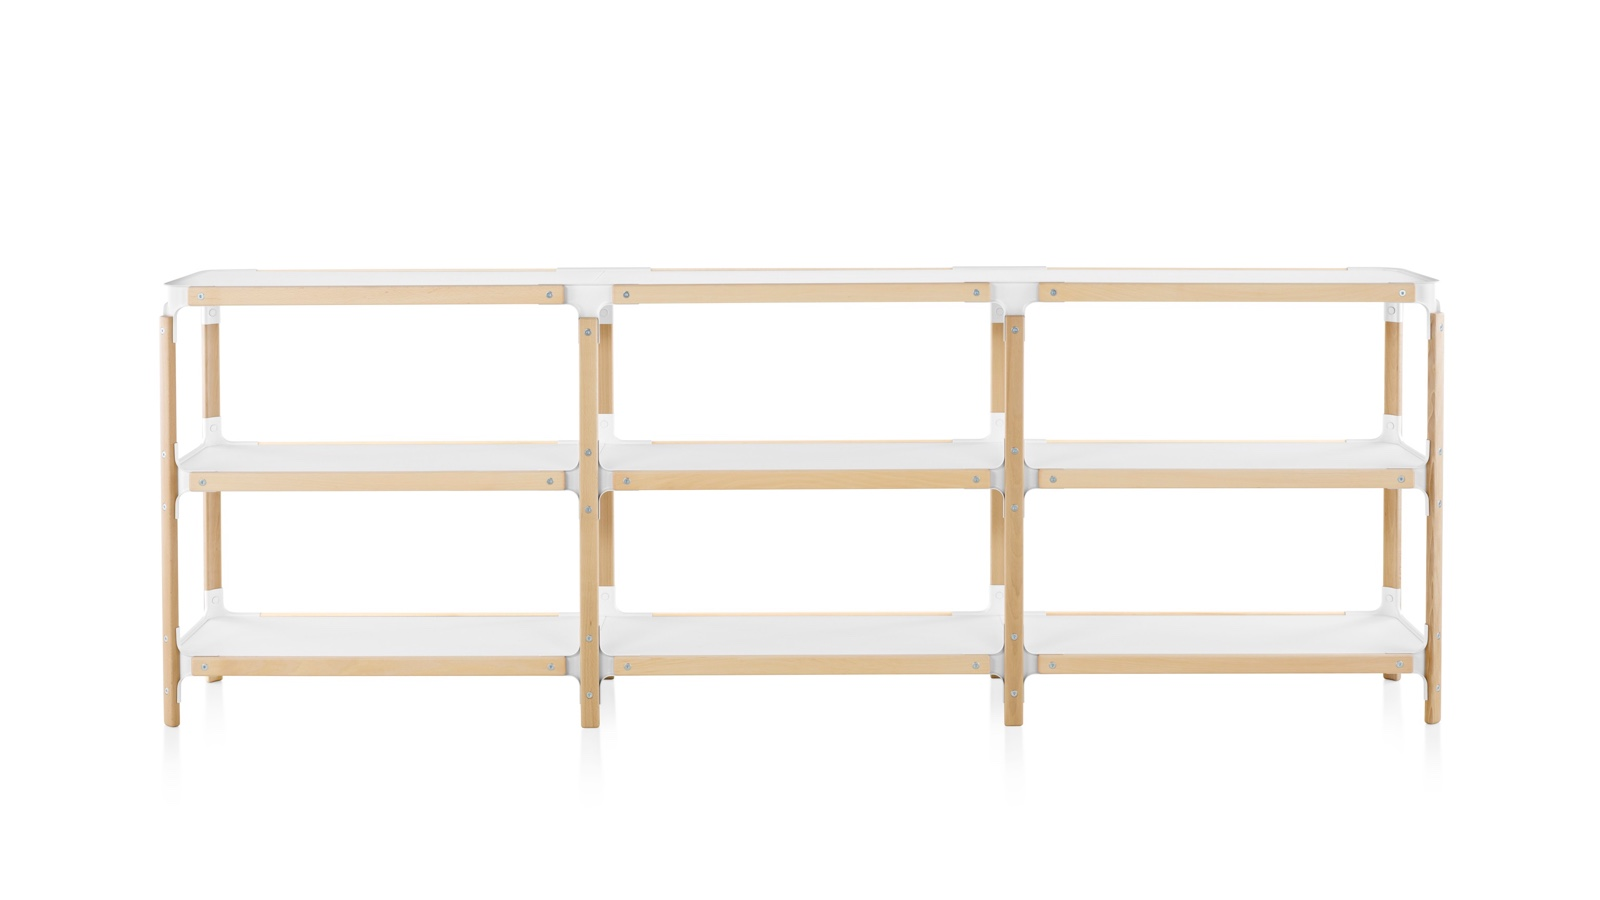 White sweep image of a three unit-wide Magis Steelwood Shelving System.